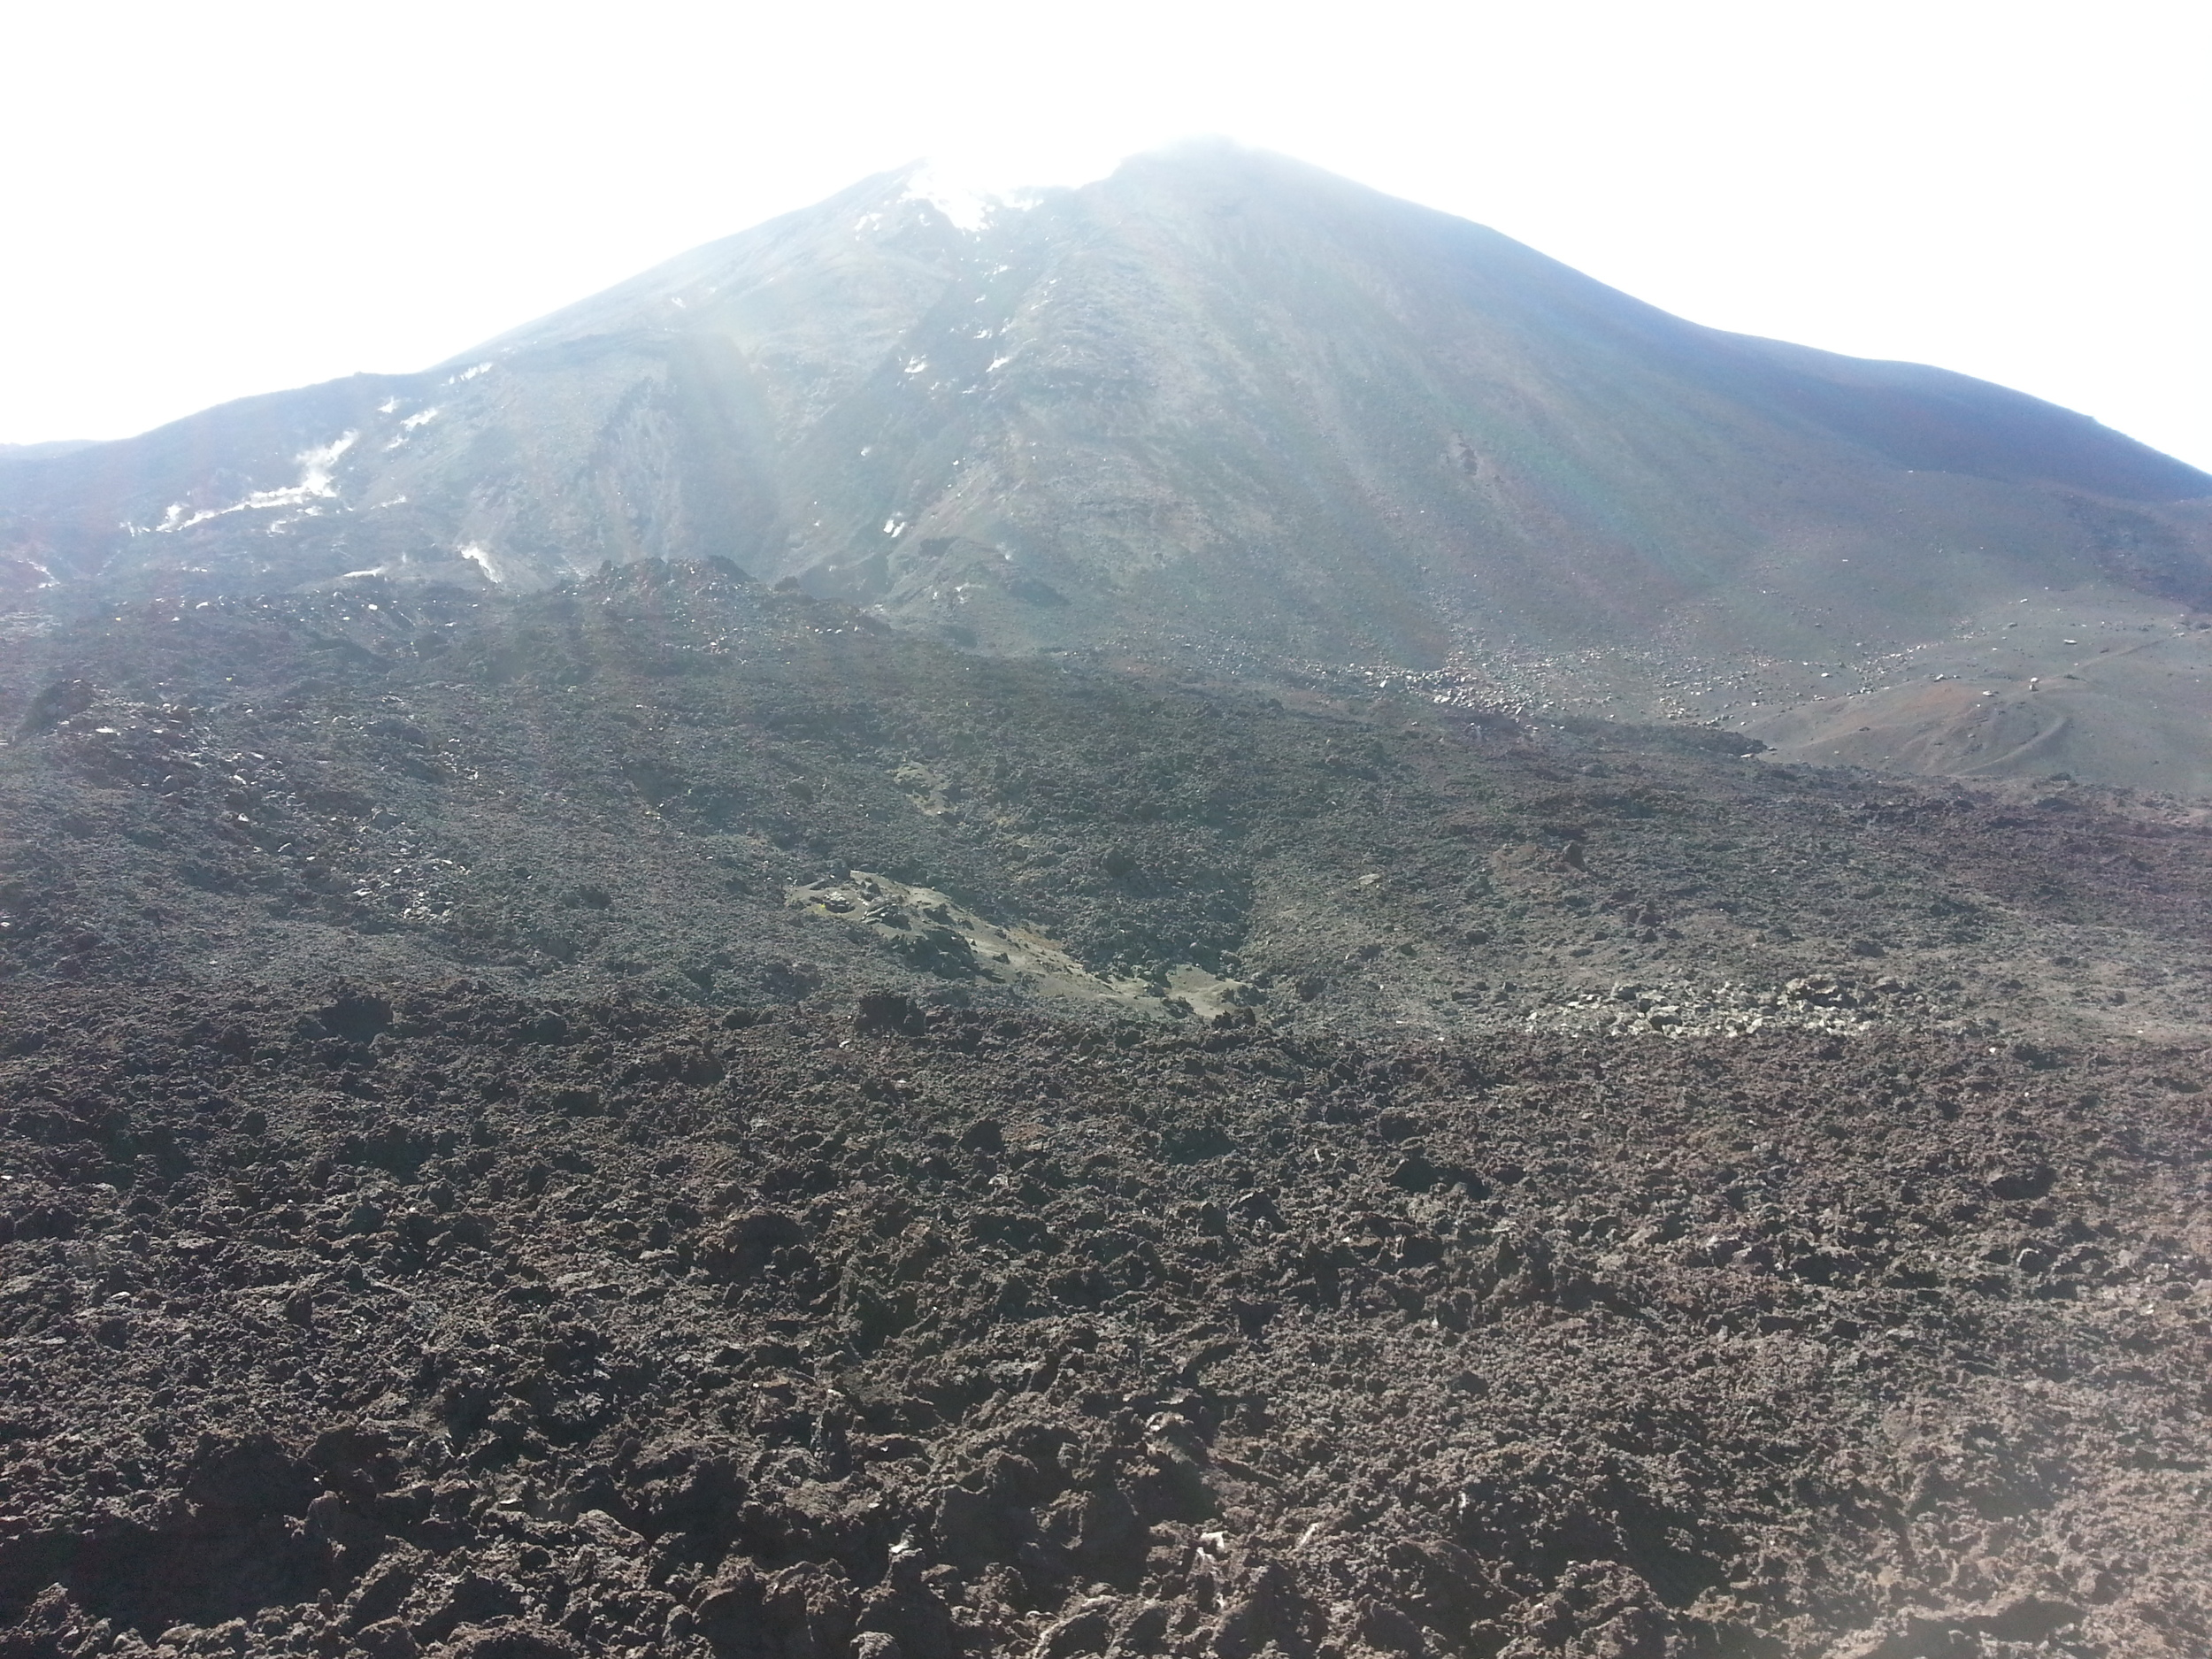 Volcano Pacaya last erupted in May 2014...